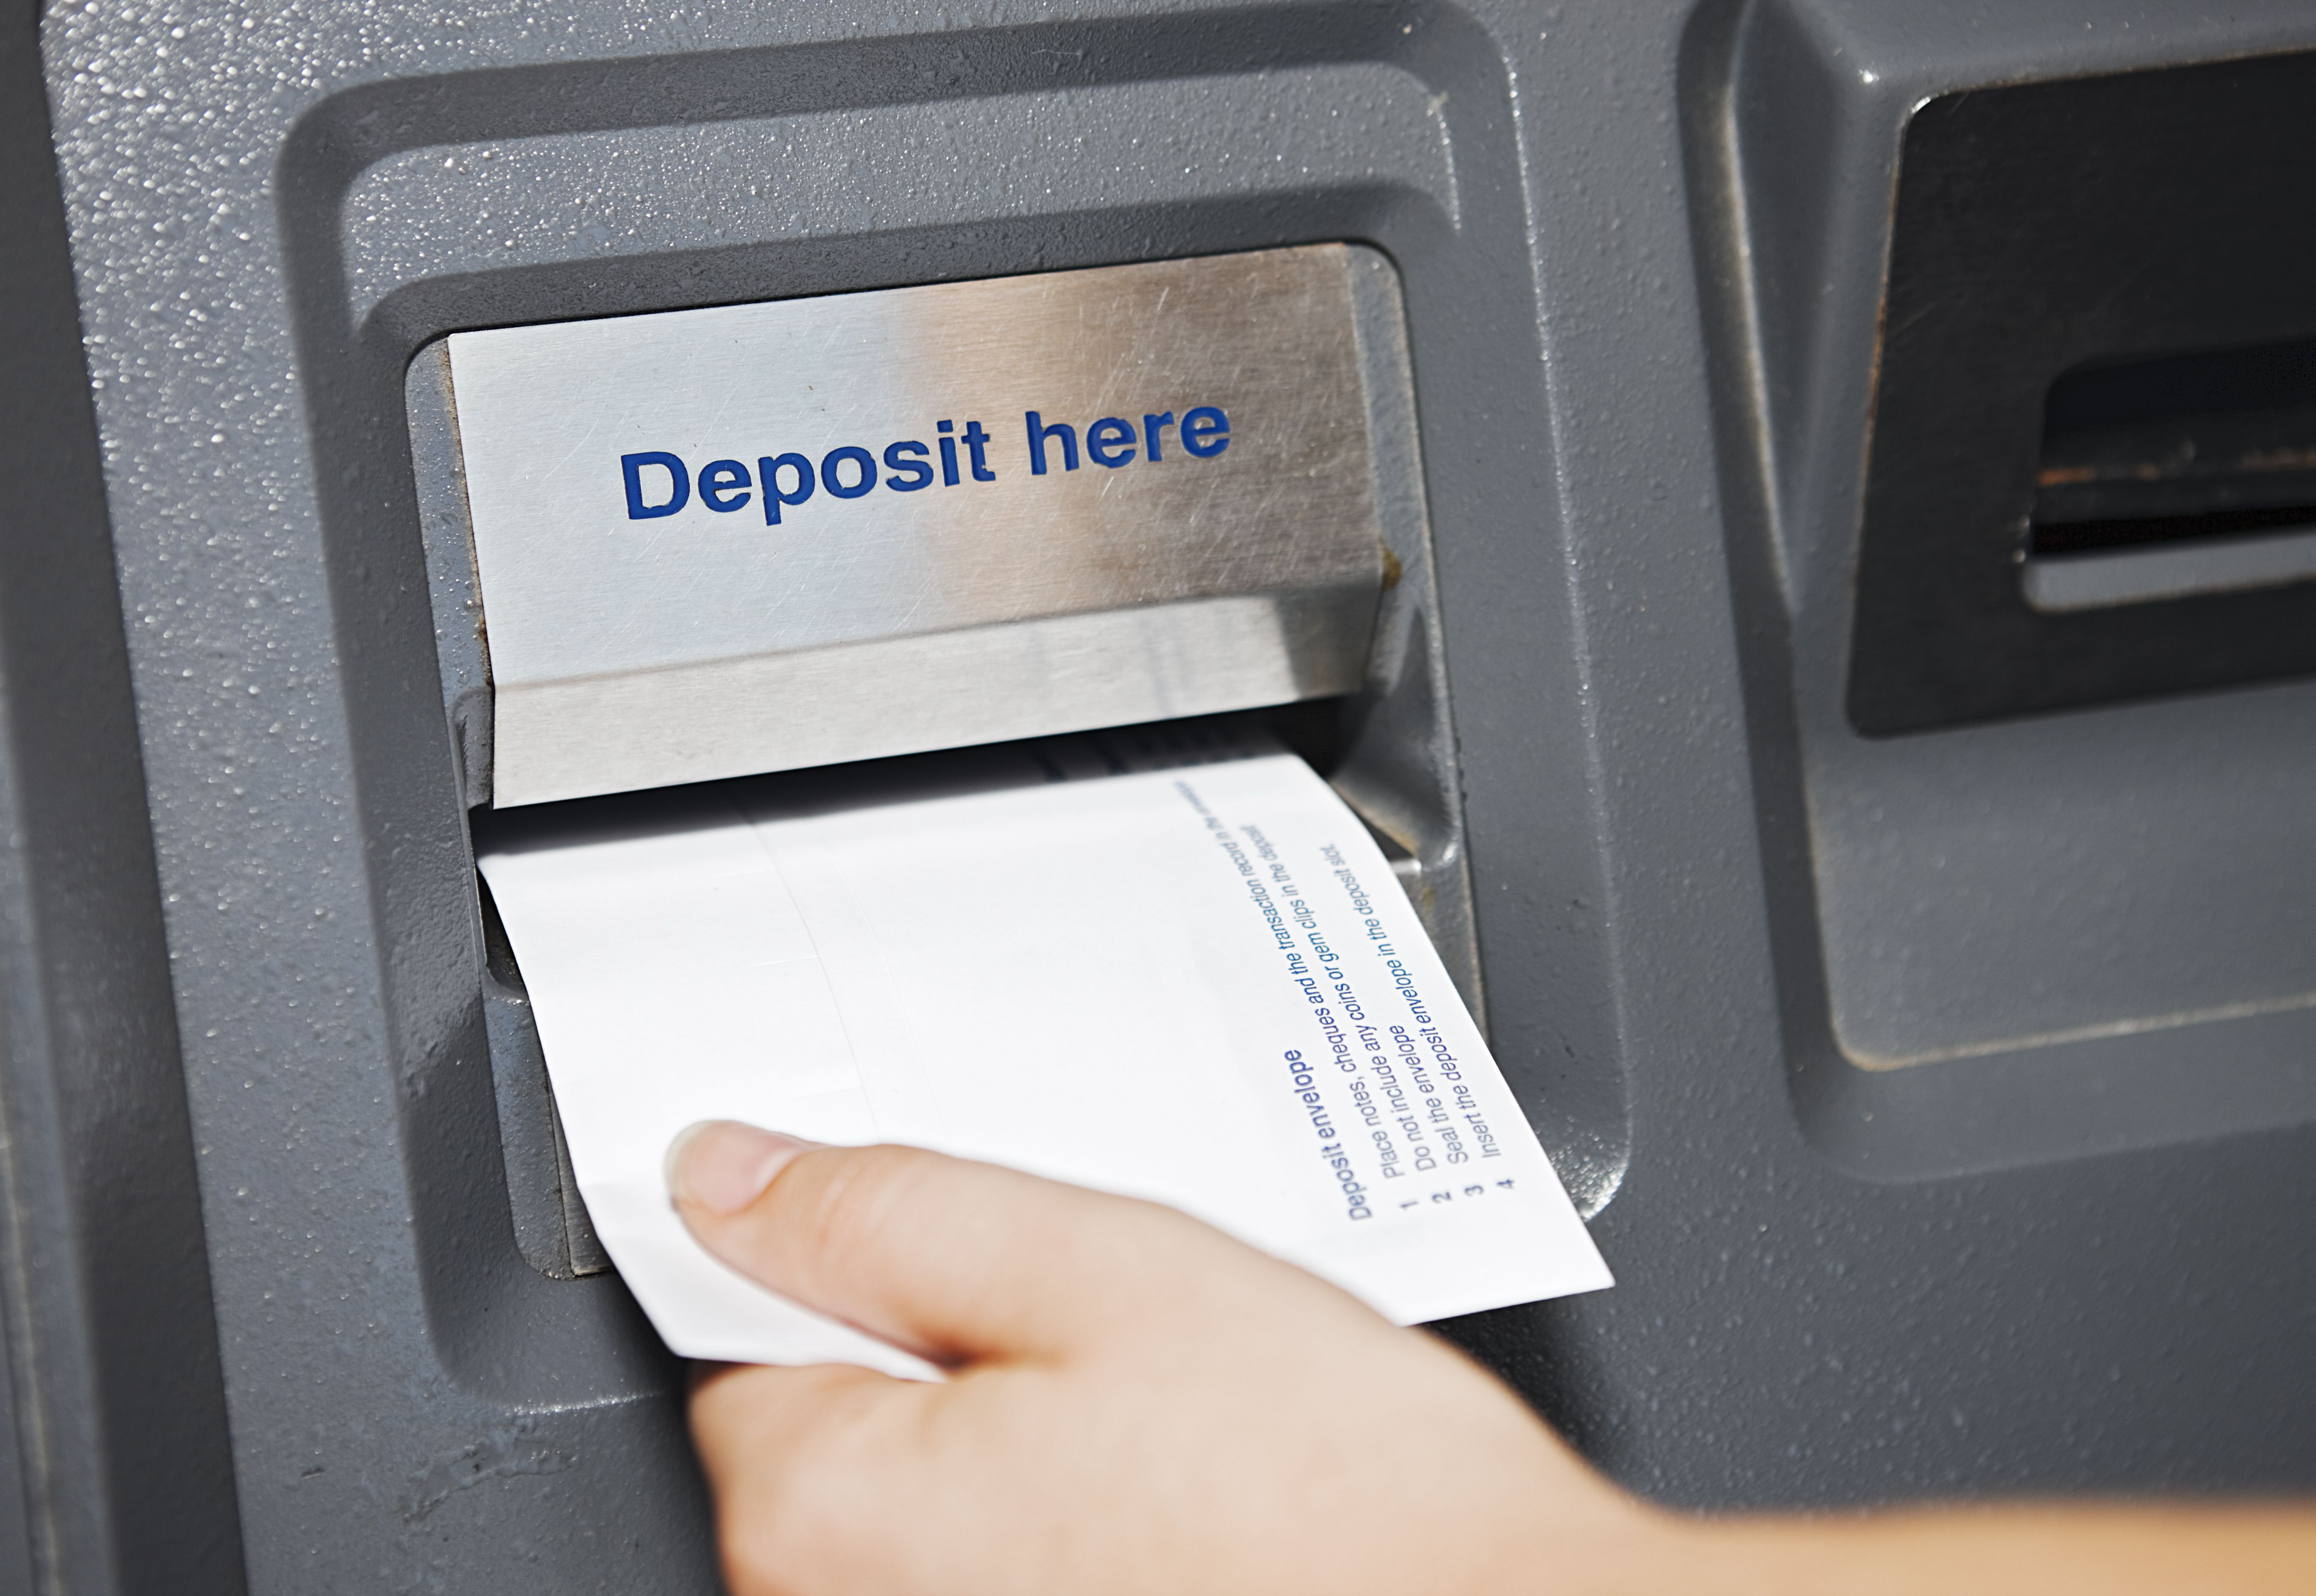 Here Is How to Add Funds to Your Bank Account With ATM Deposits